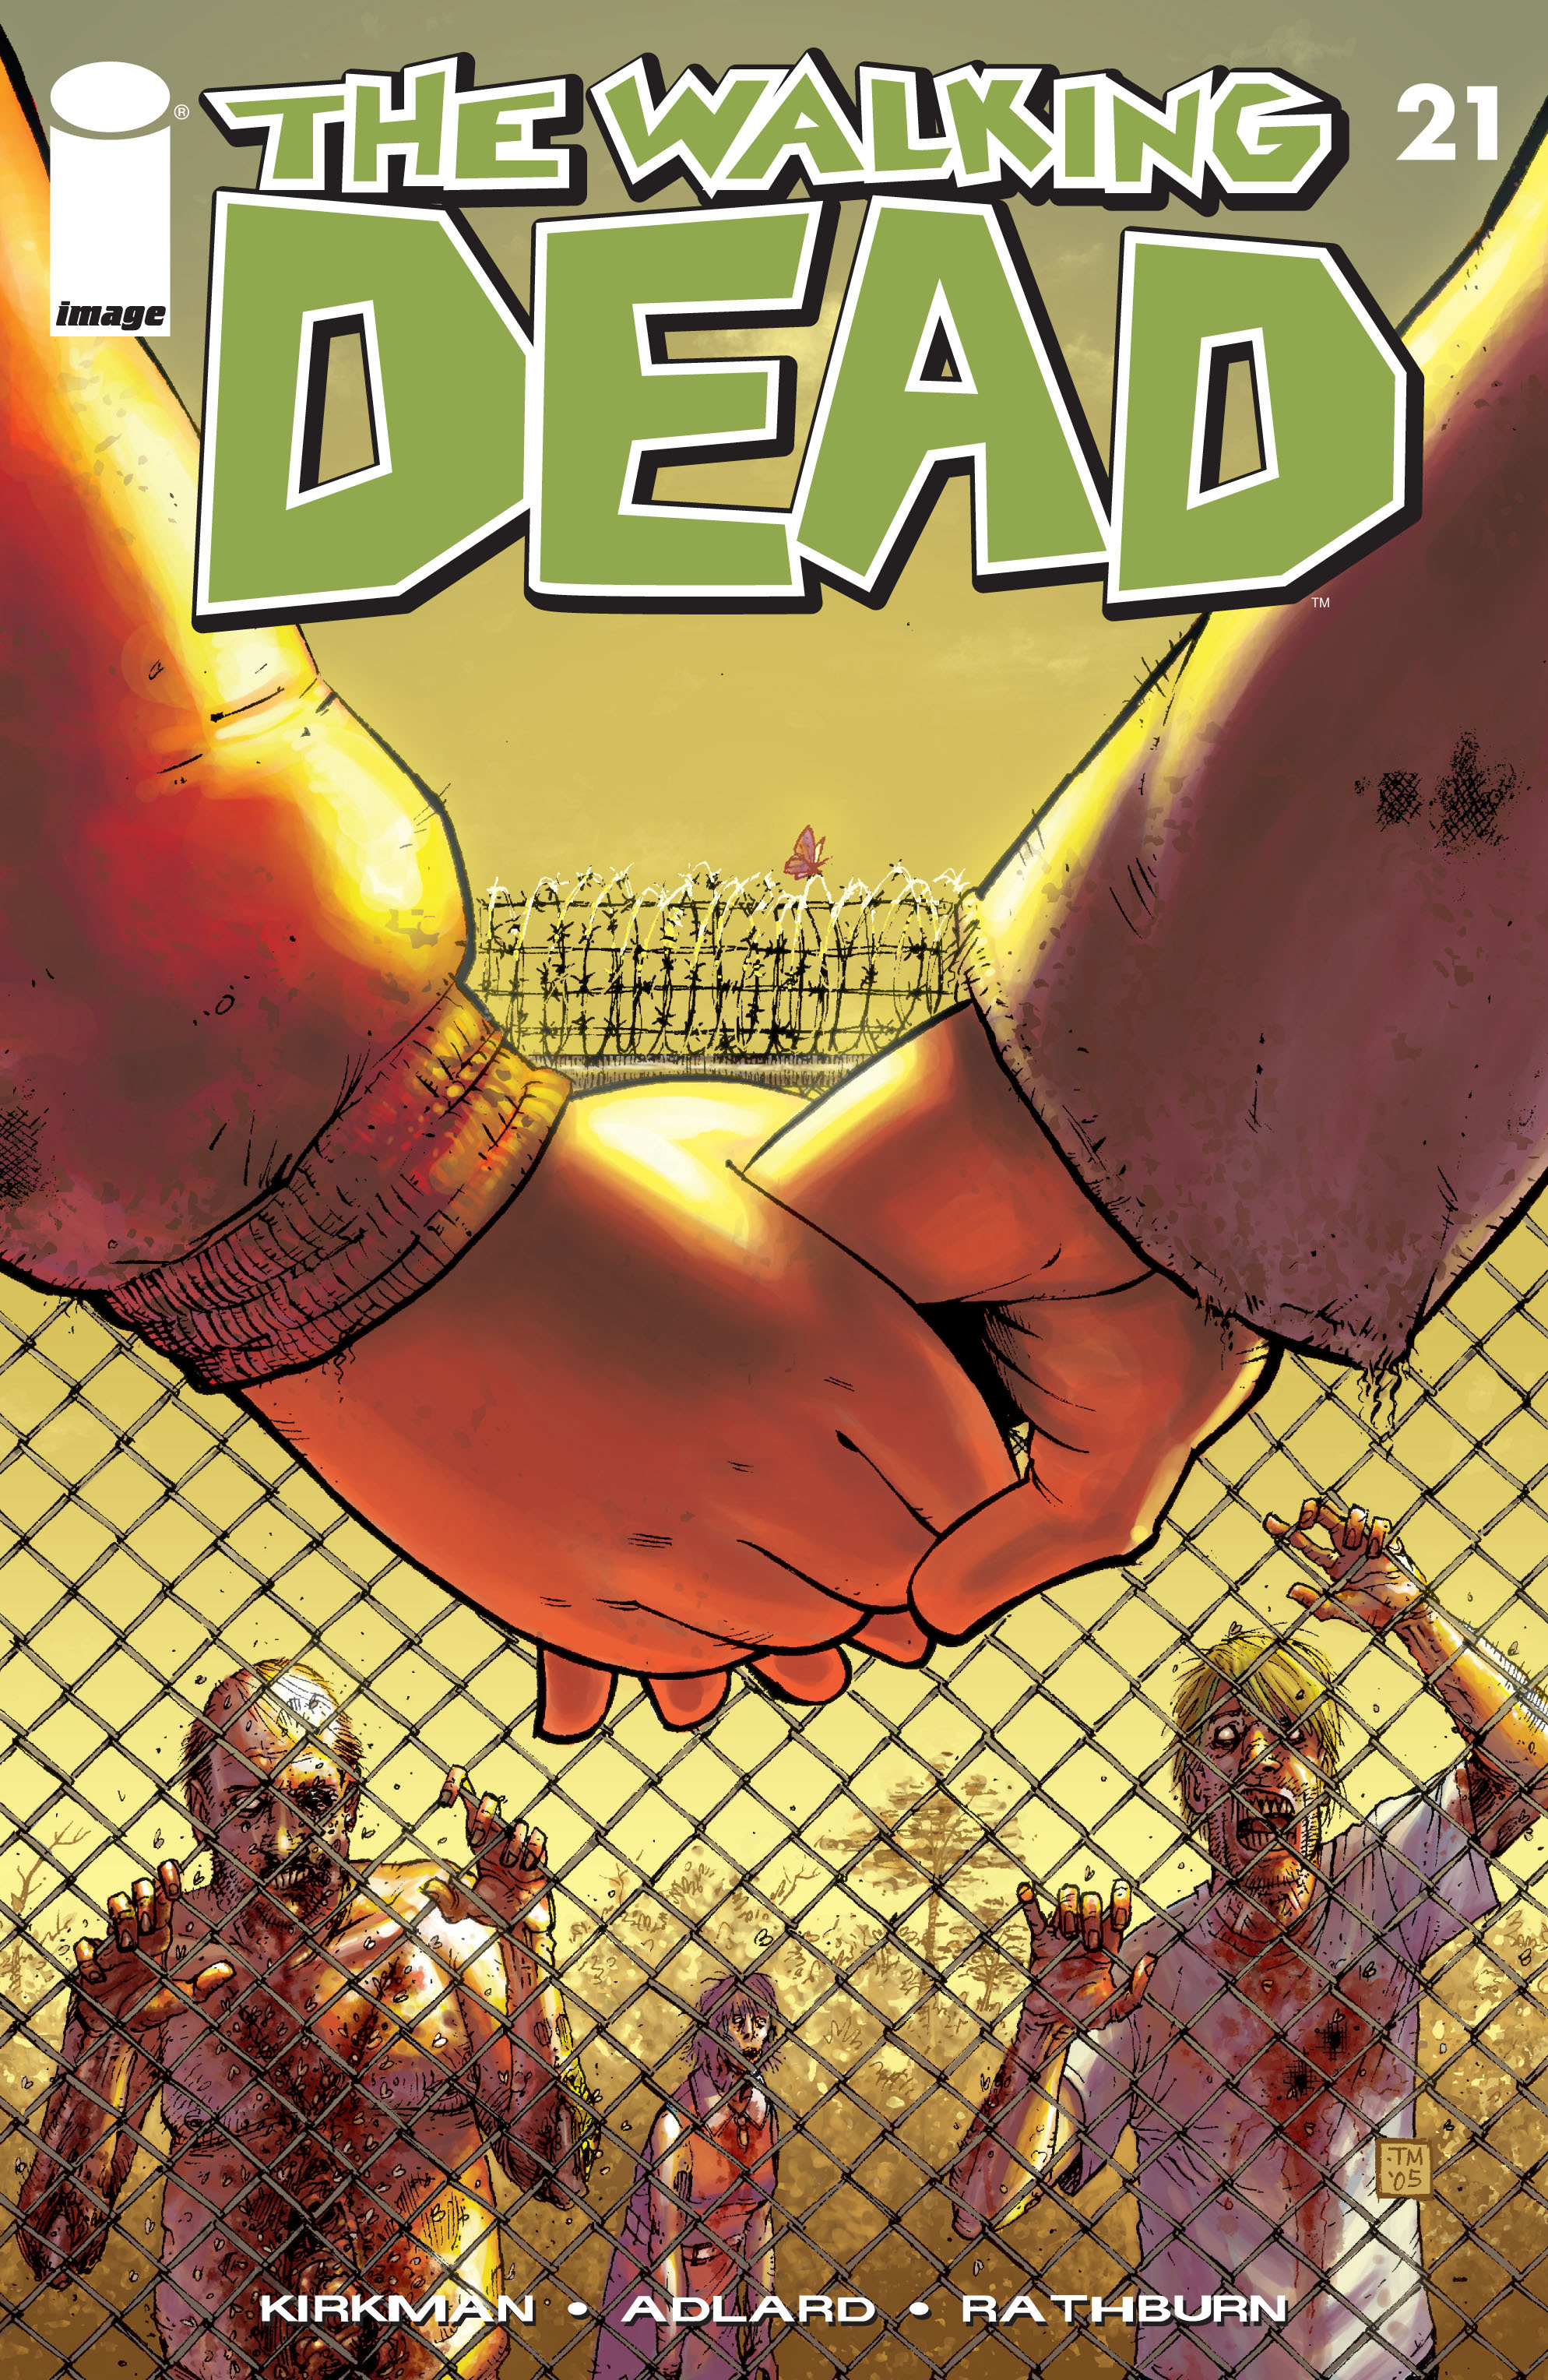 The Walking Dead Issue #21 Page 1